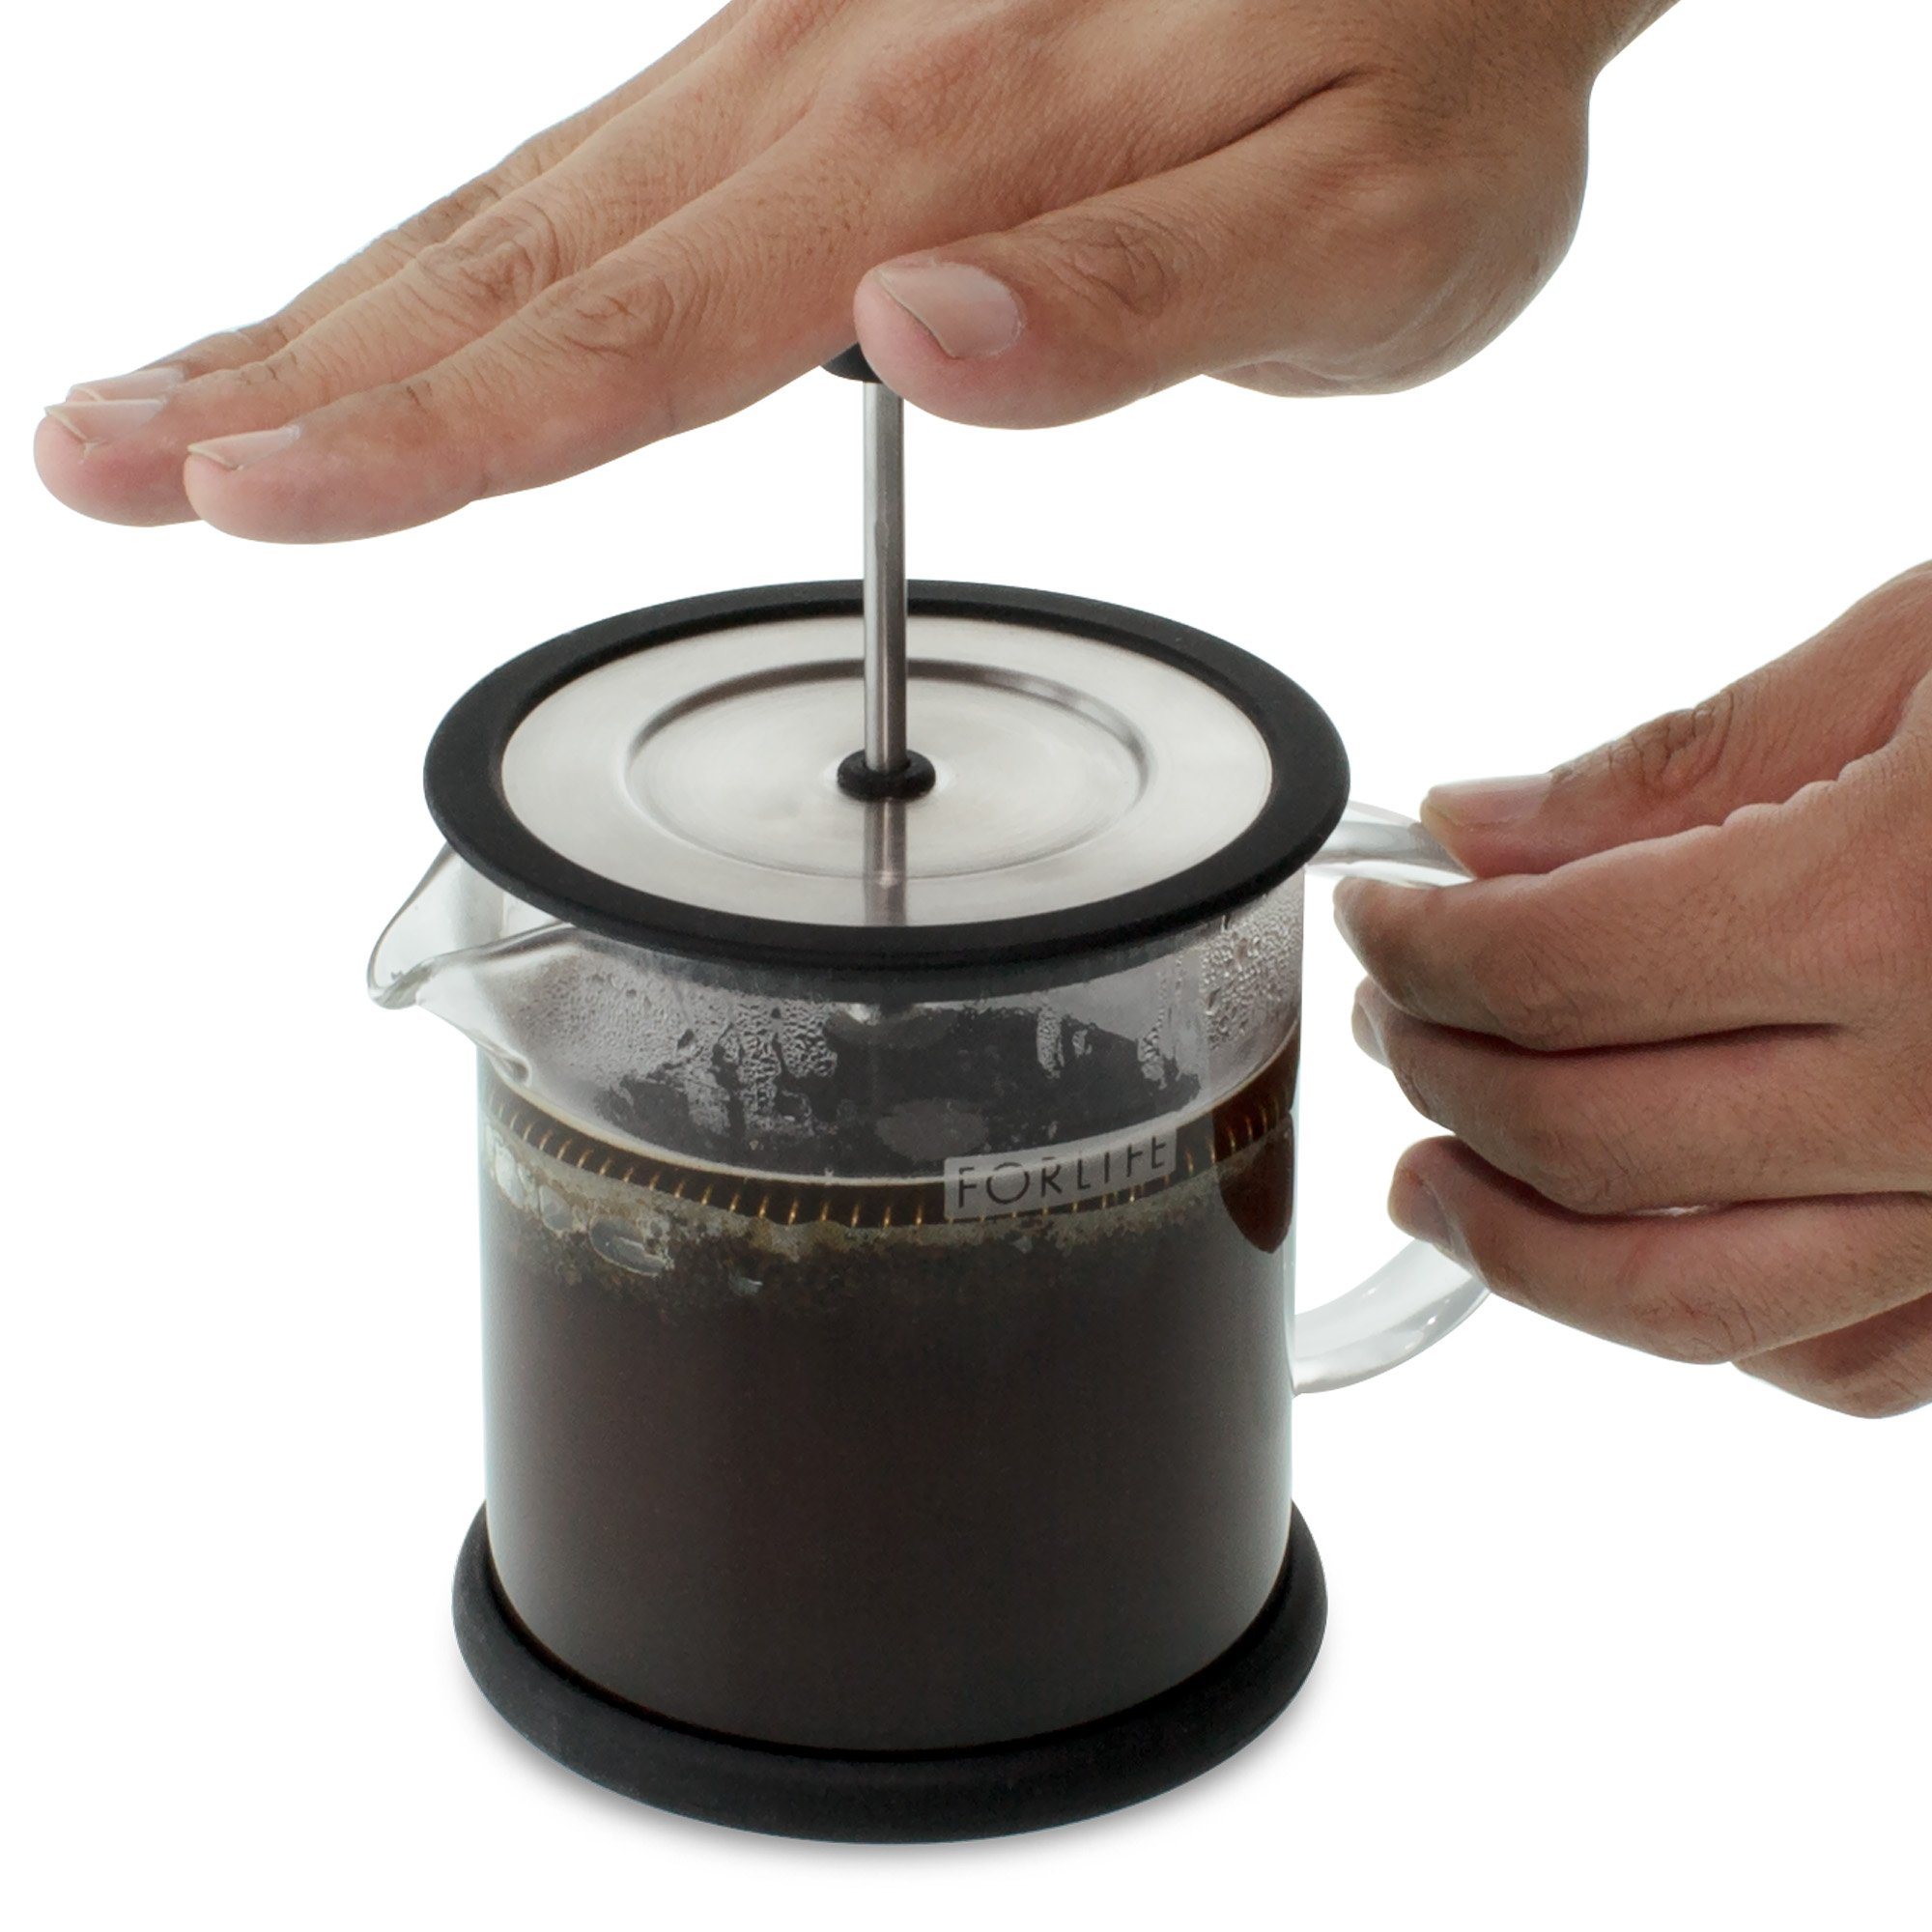 FORLIFE Cafe Style Glass Coffee/Tea Press, 16-Ounce, Black by FORLIFE (Image #4)